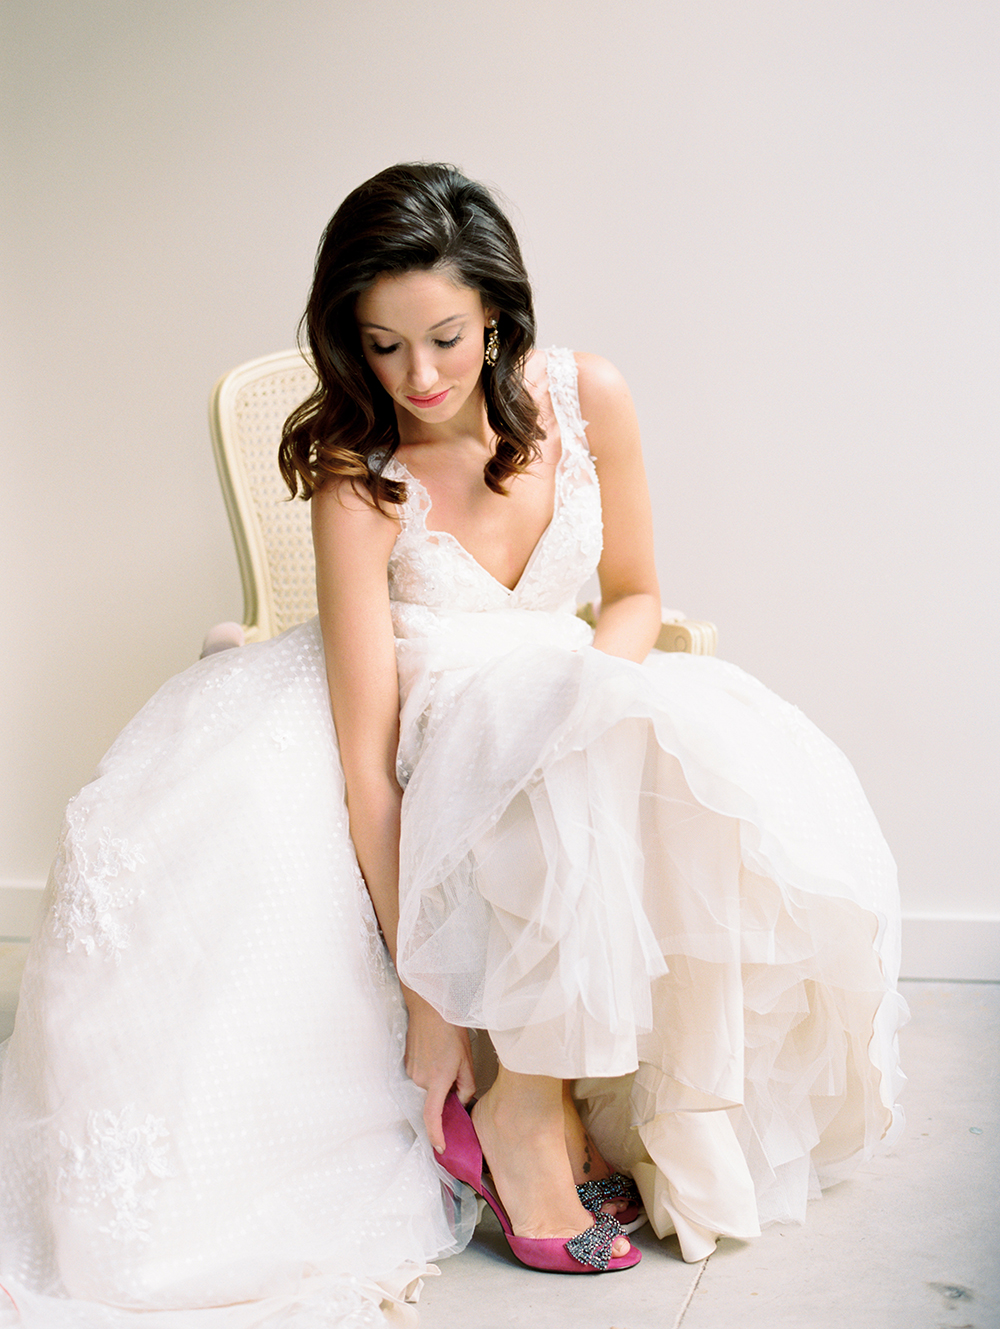 bride getting ready - photo by Erin Stubblefield http://ruffledblog.com/chic-city-valentines-day-wedding-inspiration